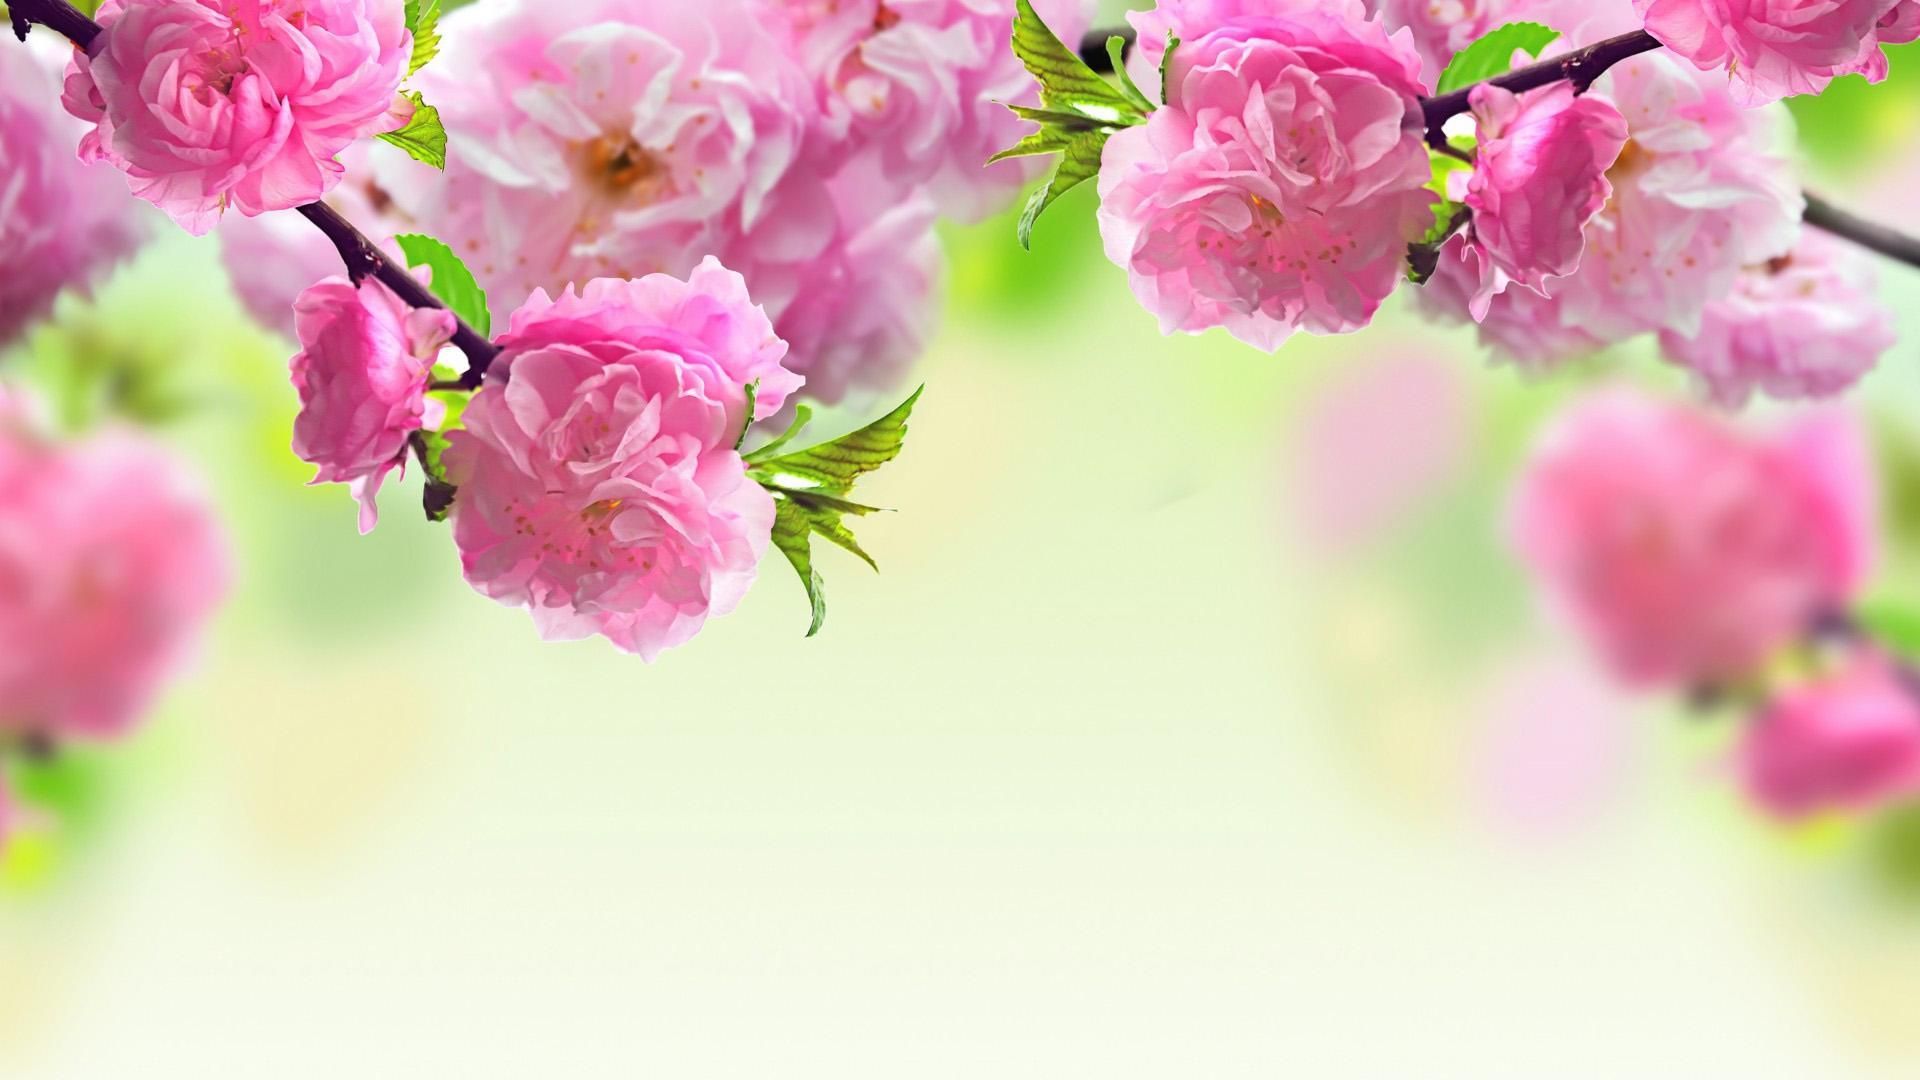 Wallpaper Collection 37 Best Free Hd Spring Desktop Wallpaper Background To Download Pc In 2020 Spring Wallpaper Spring Desktop Wallpaper Welcome May